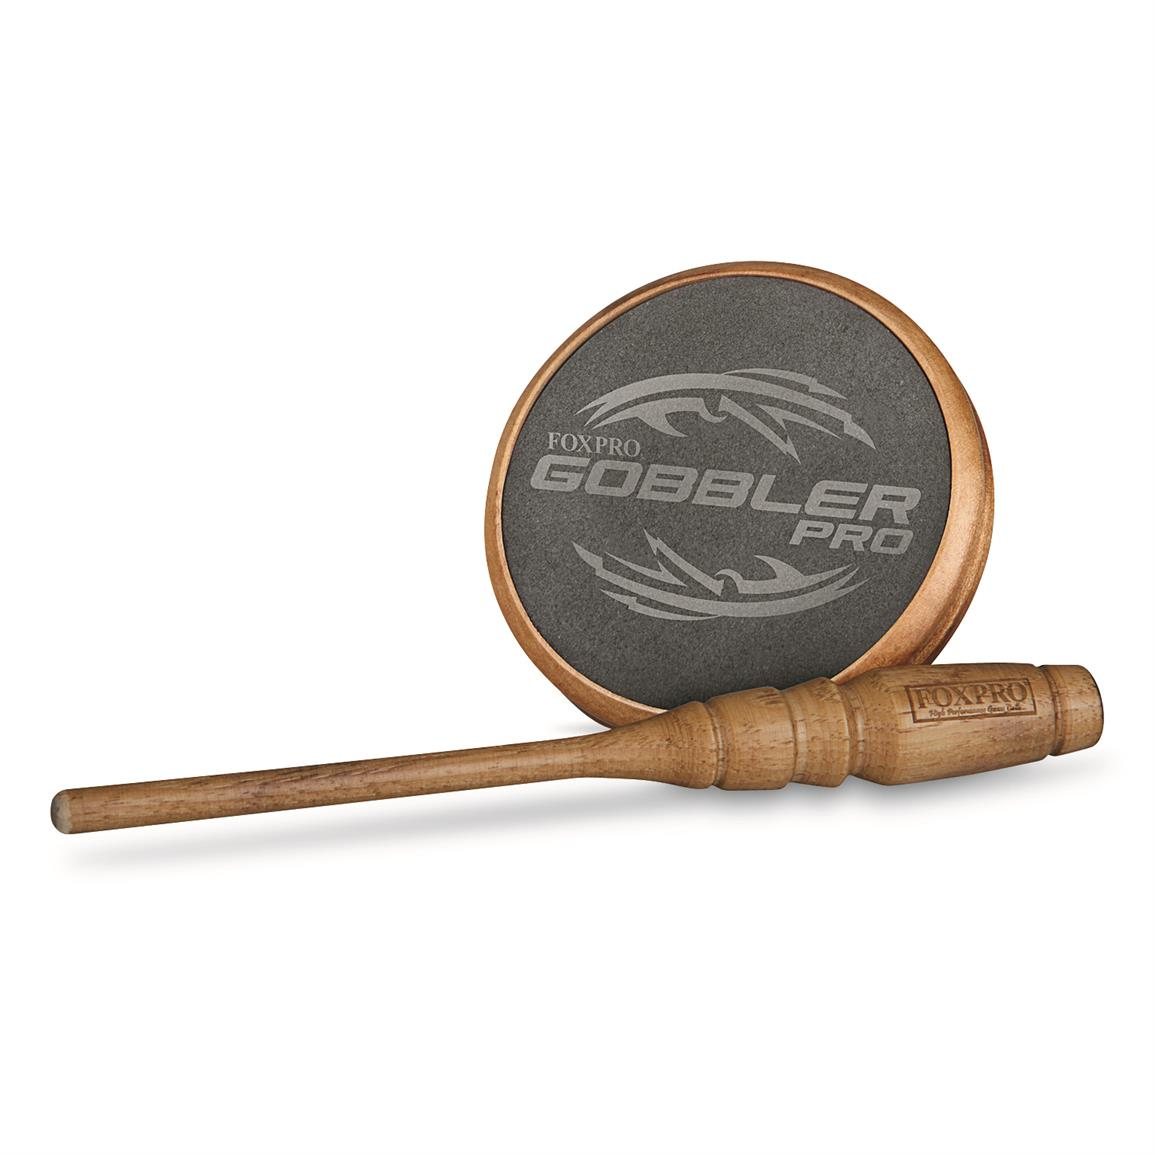 FOXPRO Gobbler Pro Turkey Pot Call, Slate